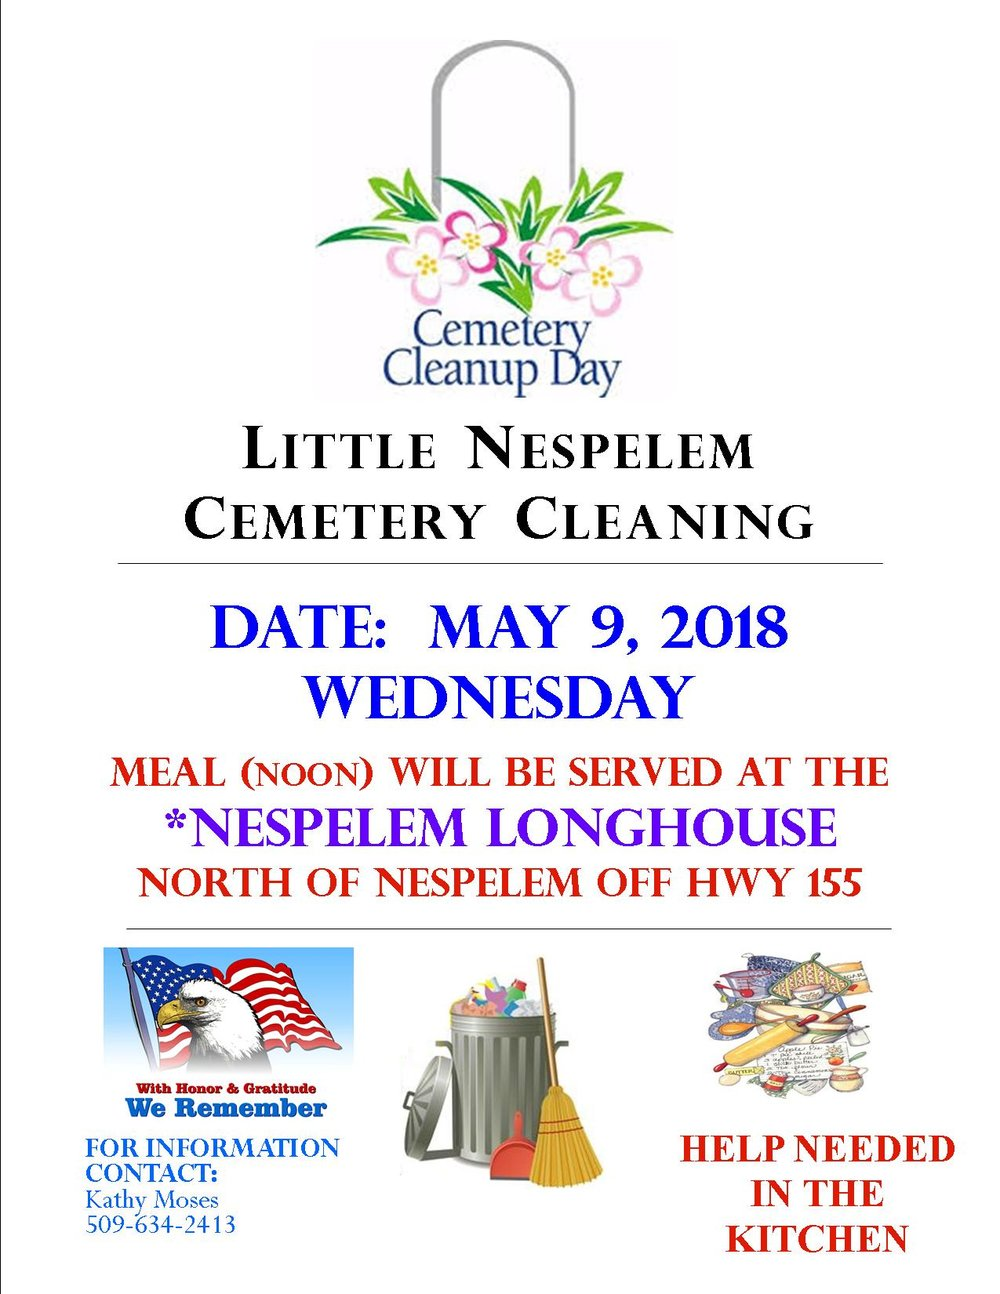 Little Nespelem Cemetery Cleaning 2018.jpg